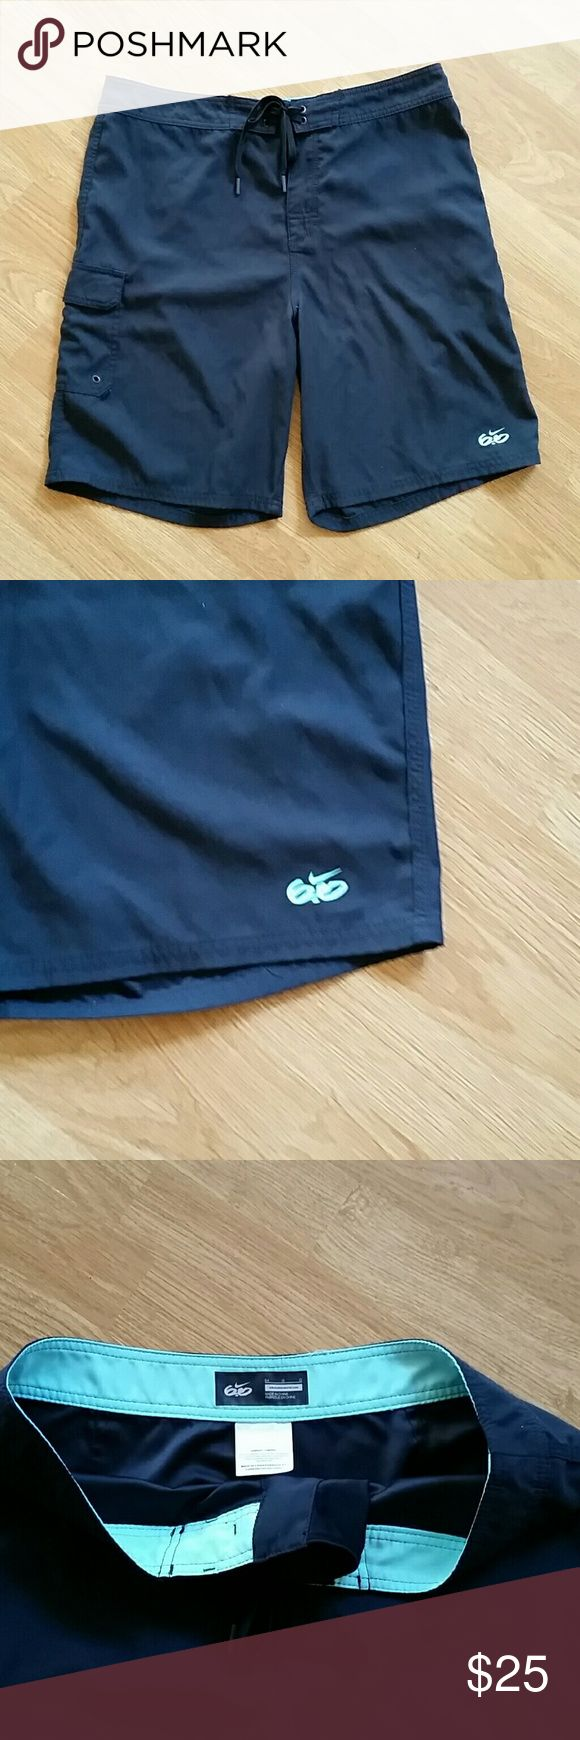 Nike 6.0 Swim Trunks size 34 Black swim trunk with turquoise inside waist and on the 6.0 logo. Side pocket on leg.  Excellent Used Condition Nike Swim Swim Trunks